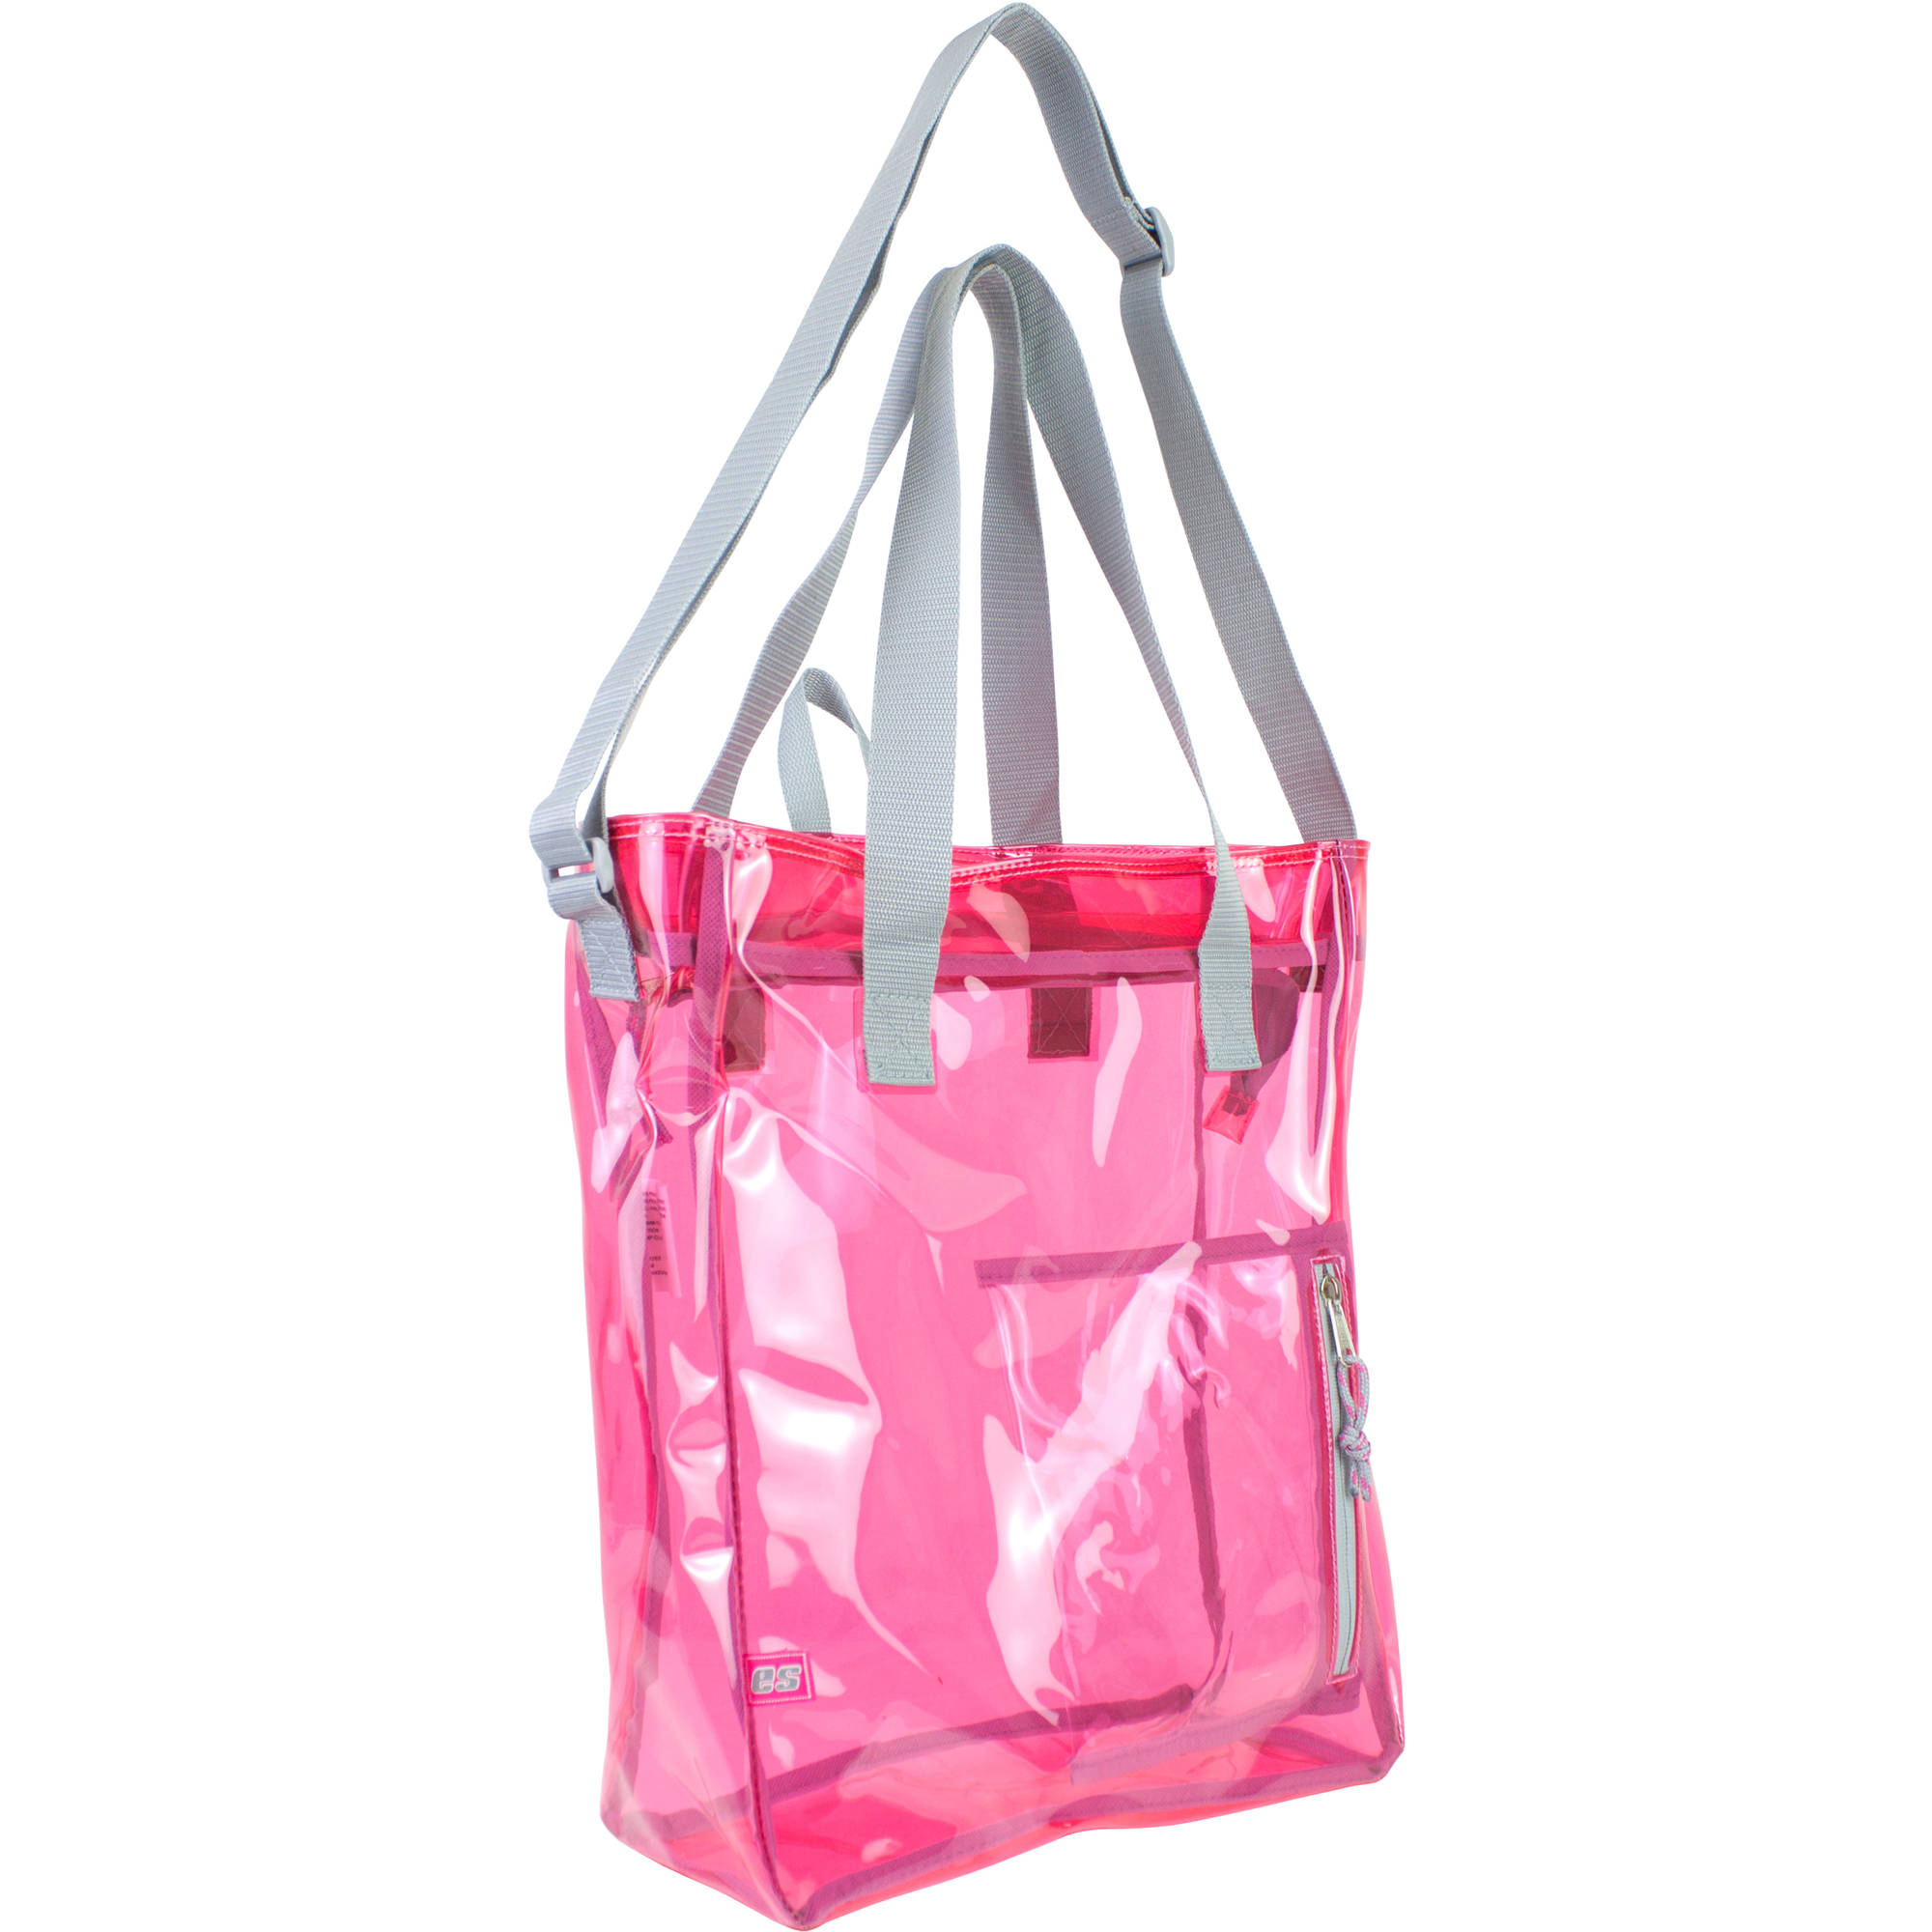 Eastsport Tinted Clear Tote Bag